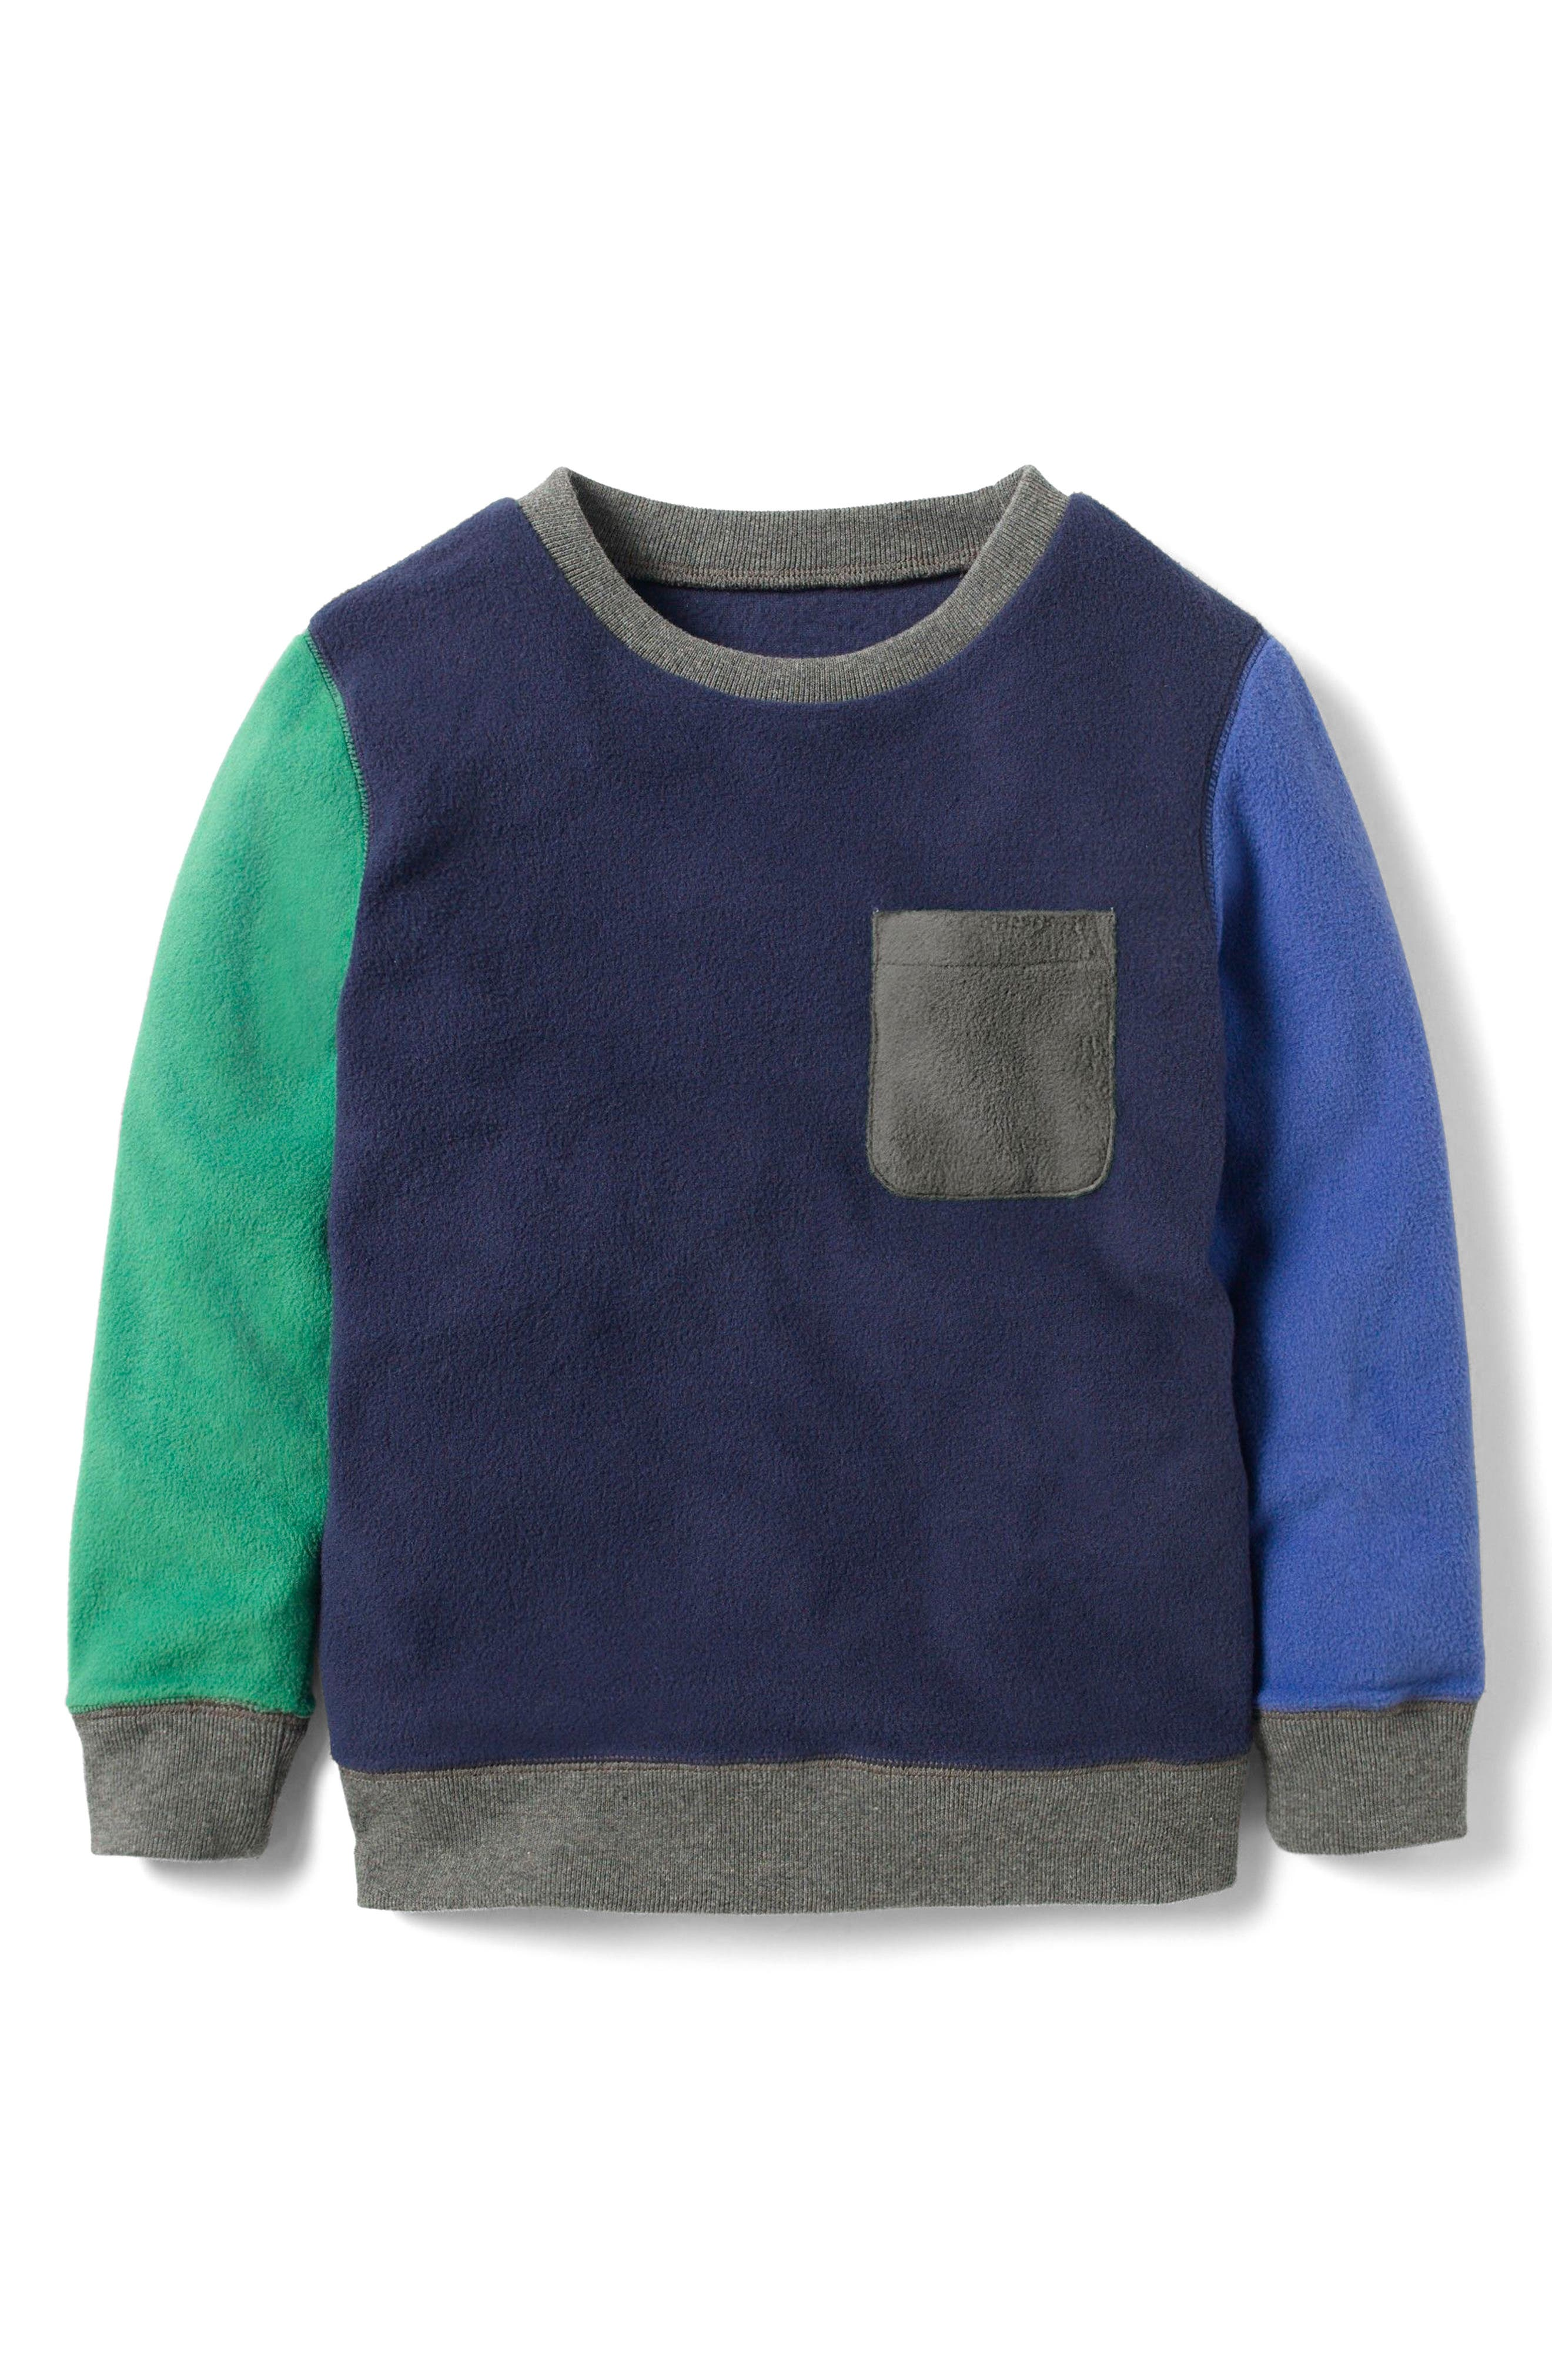 Alternate Image 1 Selected - Mini Boden Colorblock Fleece Sweatshirt (Toddler Boys, Little Boys & Big Boys)